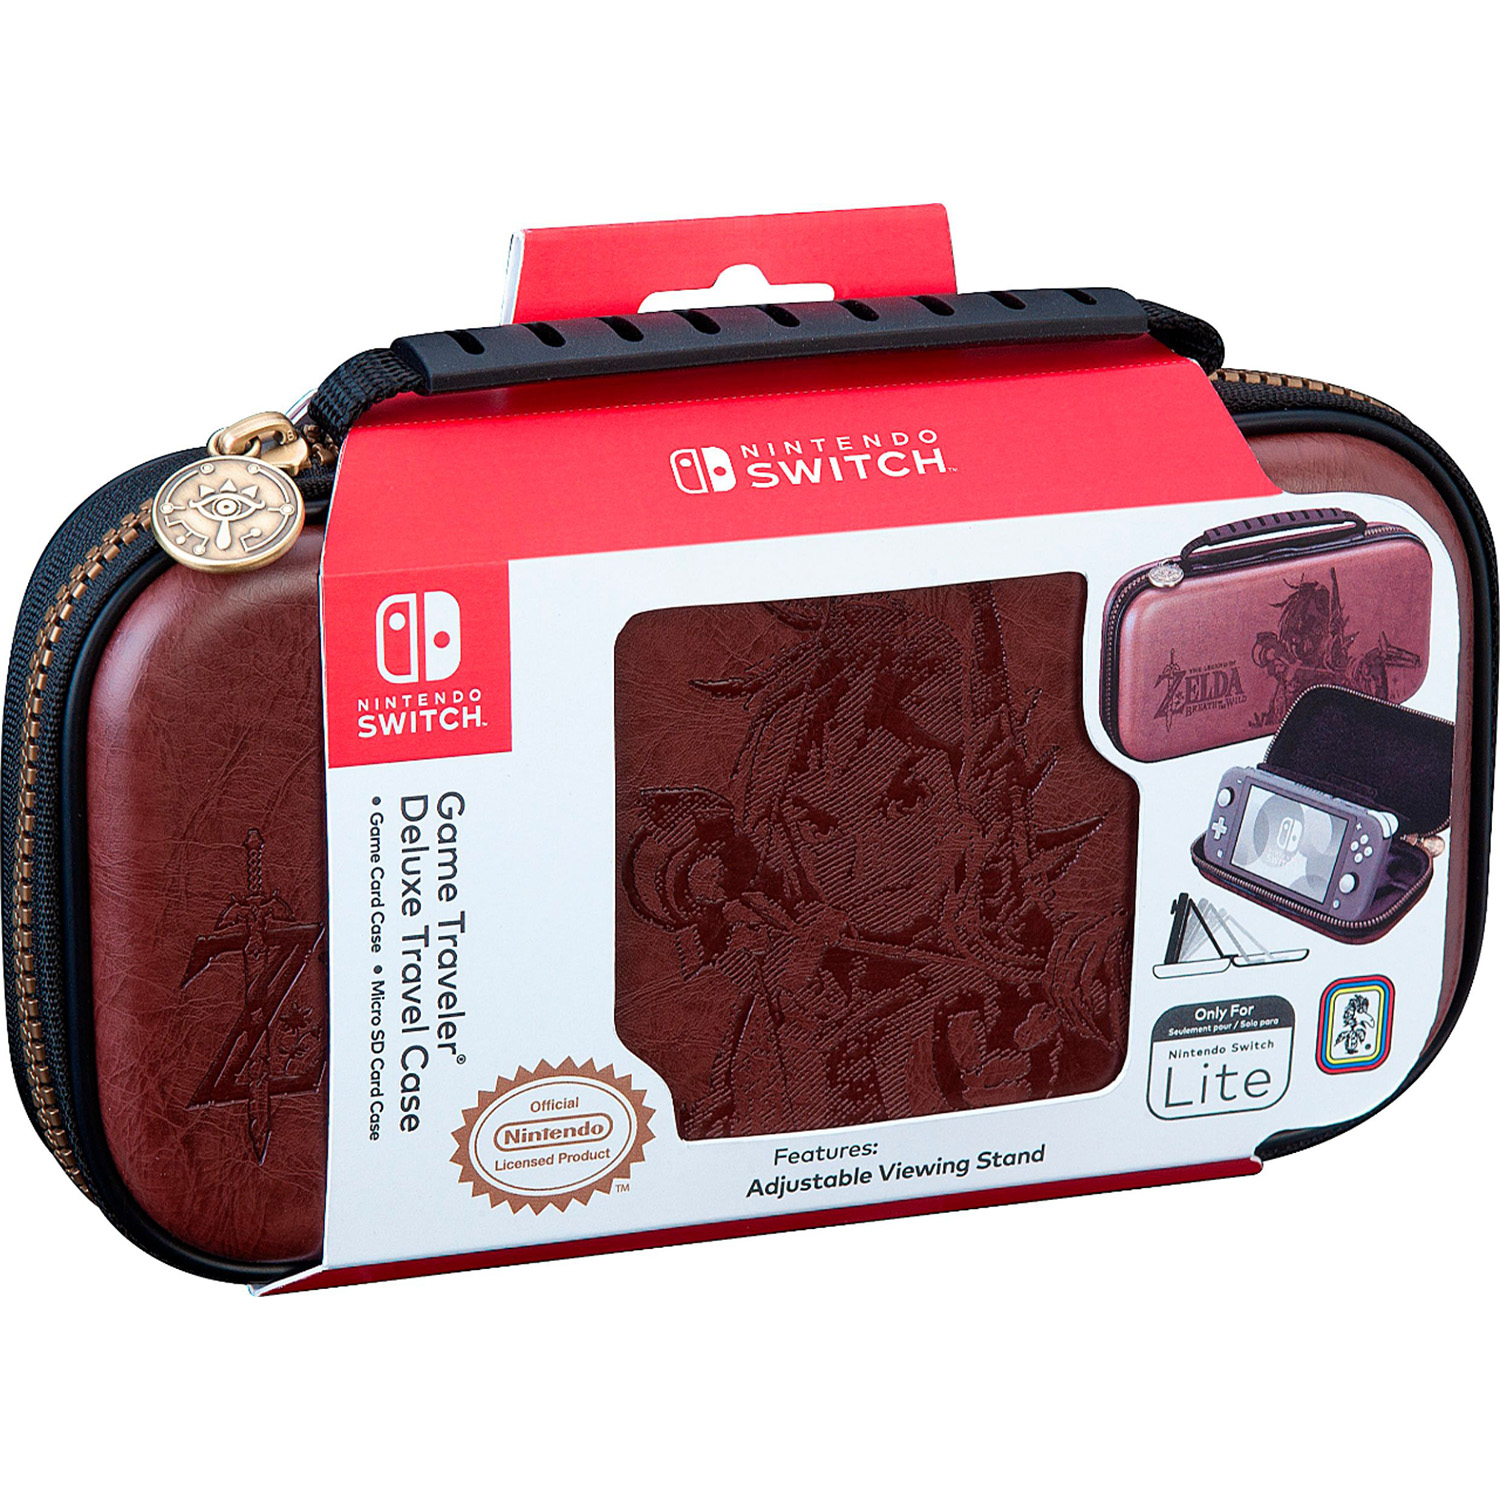 Etuit de transport Premium The Legend of Zelda Breath of the Wild Nintendo Switch Lite